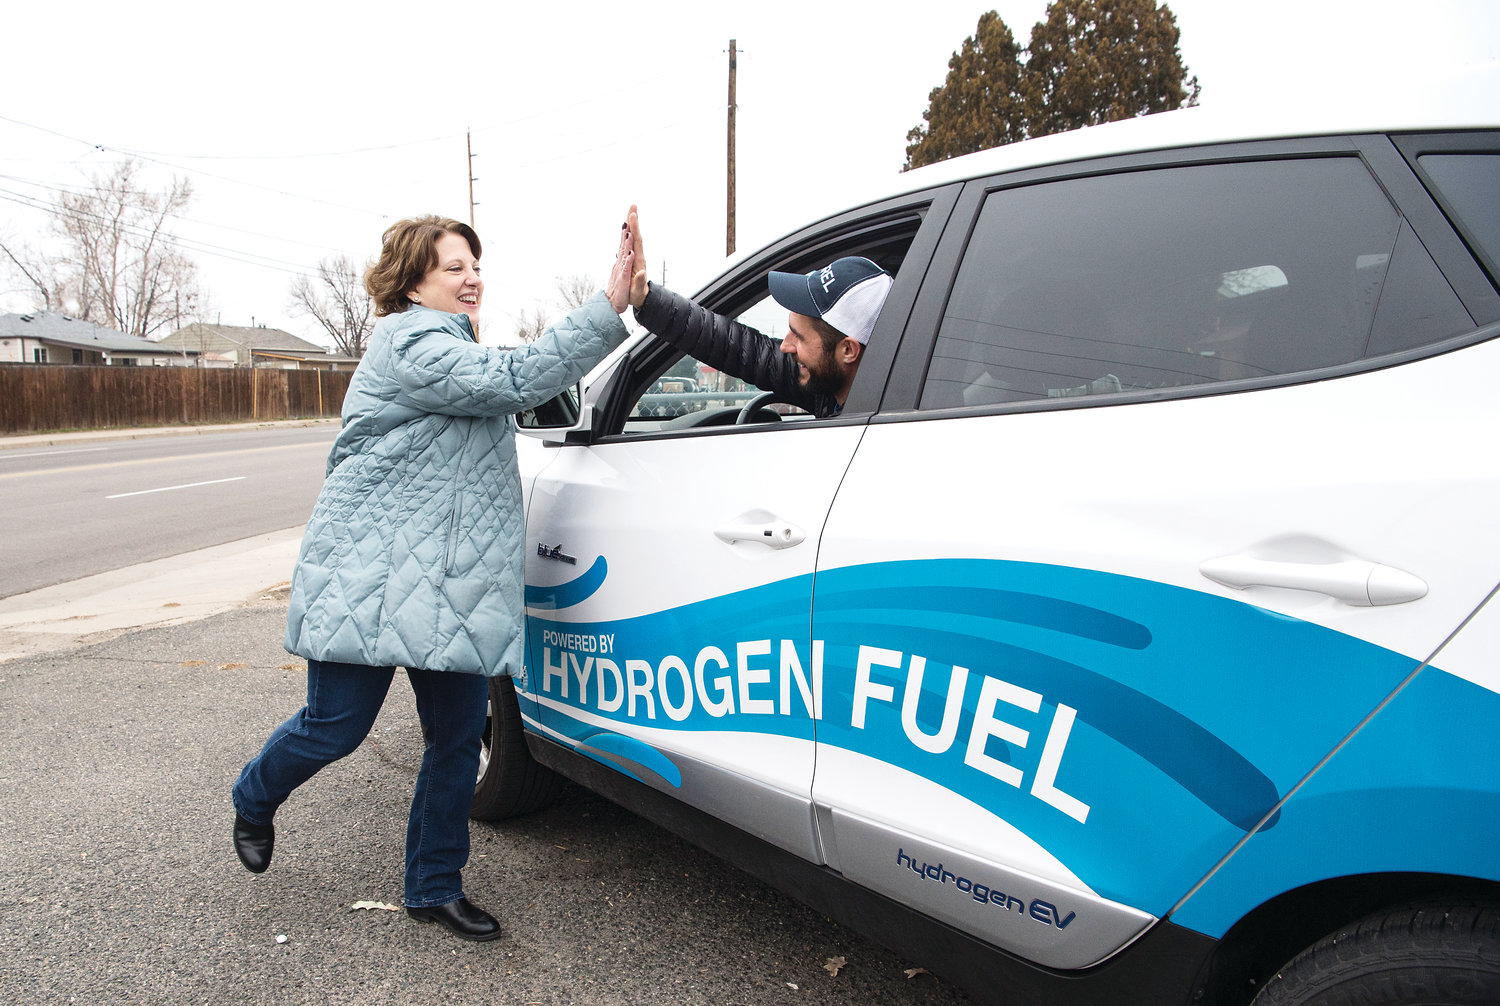 National Renewable Energy Laboratory (NREL) employee Angie Rhyne gives a high-five to her colleague Shaun Onorato following a delivery to a Project Angel Heart client on Nov. 30. Onorato is sitting inside a Hyundai Tucson — one of the two Hydrogen Fuel Cell vehicles that the NREL employees used to deliver food that day.